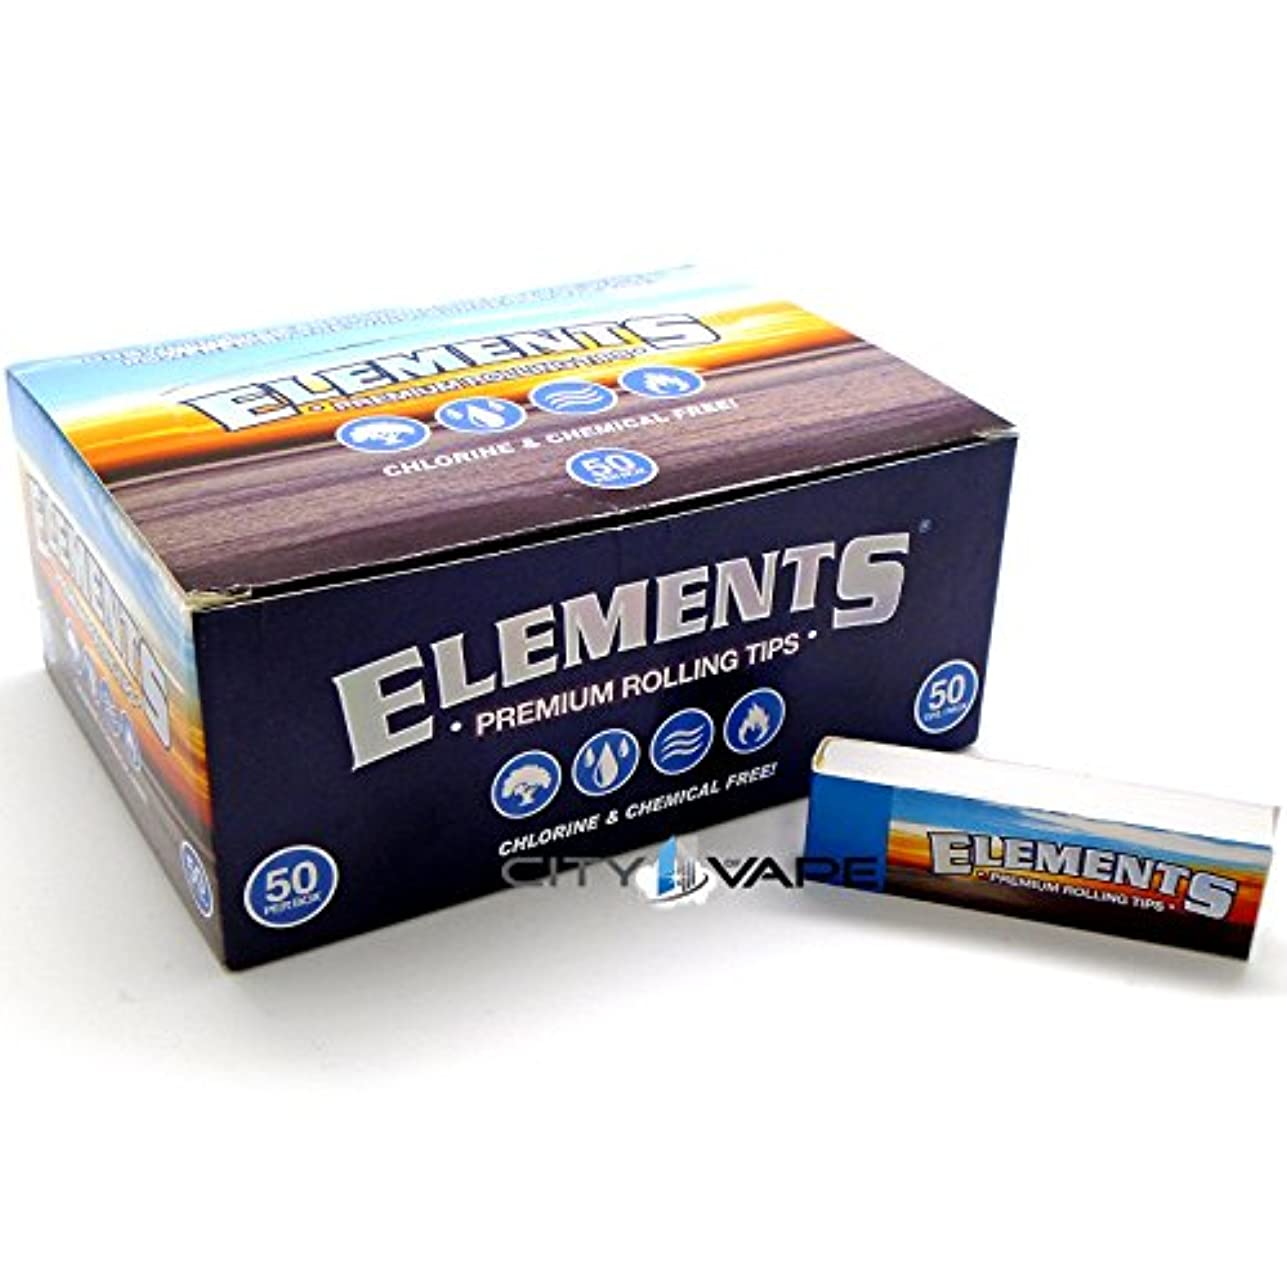 Element Premium Rolling Tips box of 50 by ELEMENT